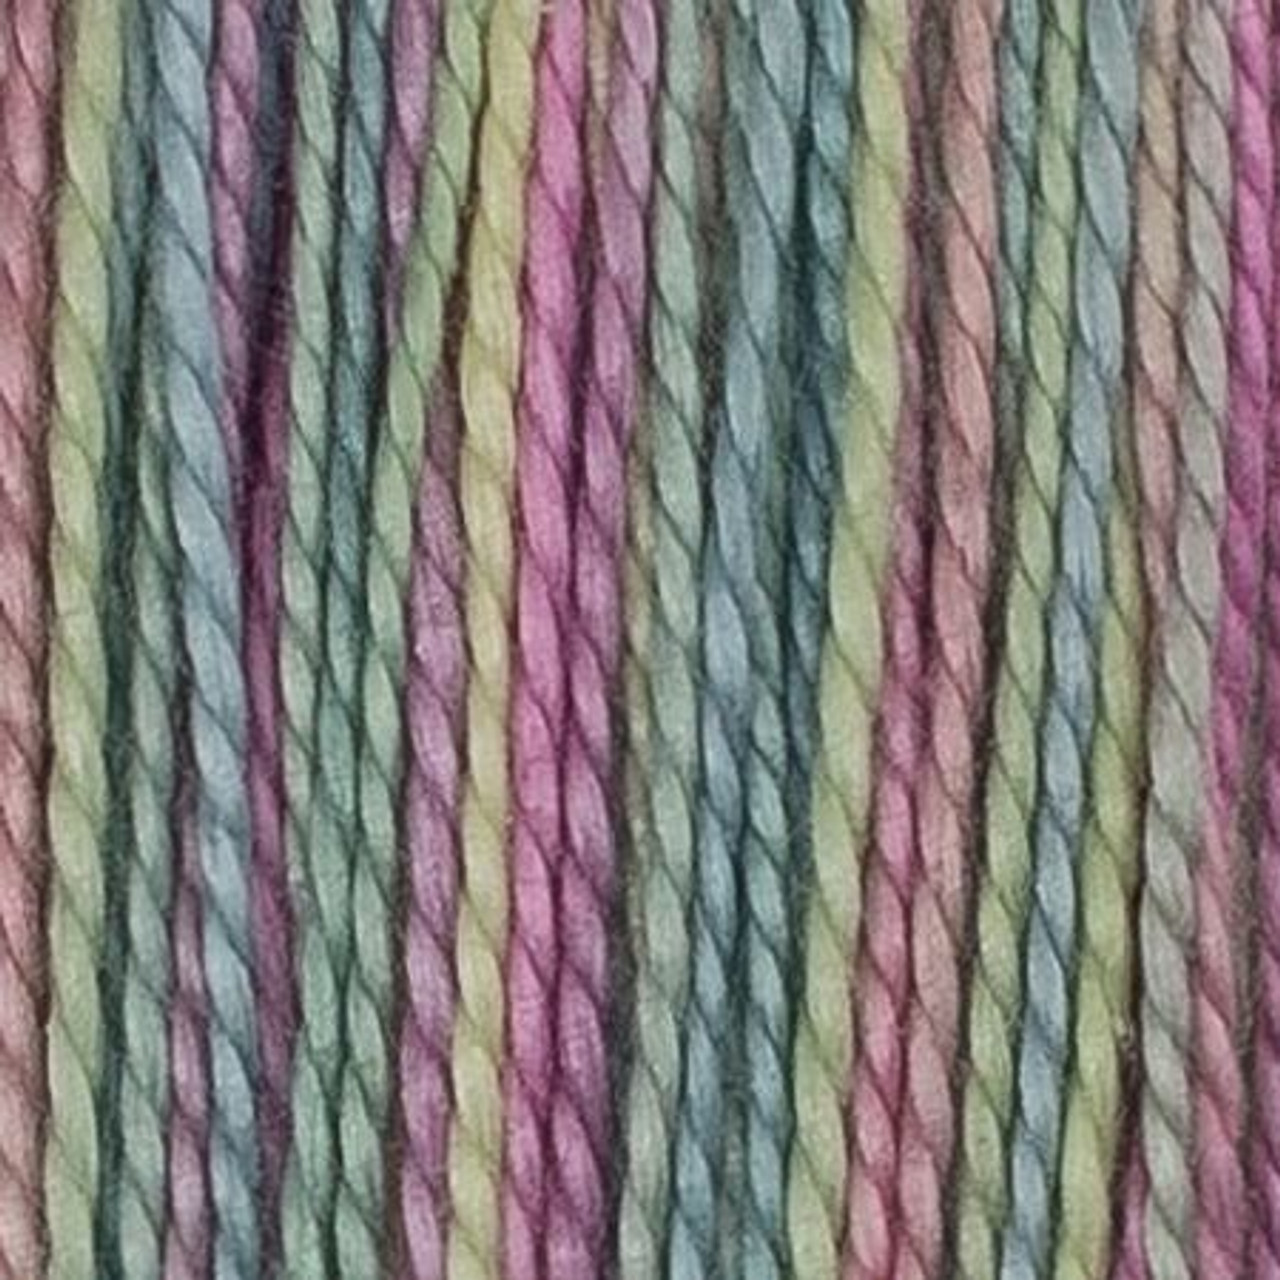 House of Embroidery : Cape Town Coastal Drive Collection, 8wt Perle Cotton - Grapes (39C)